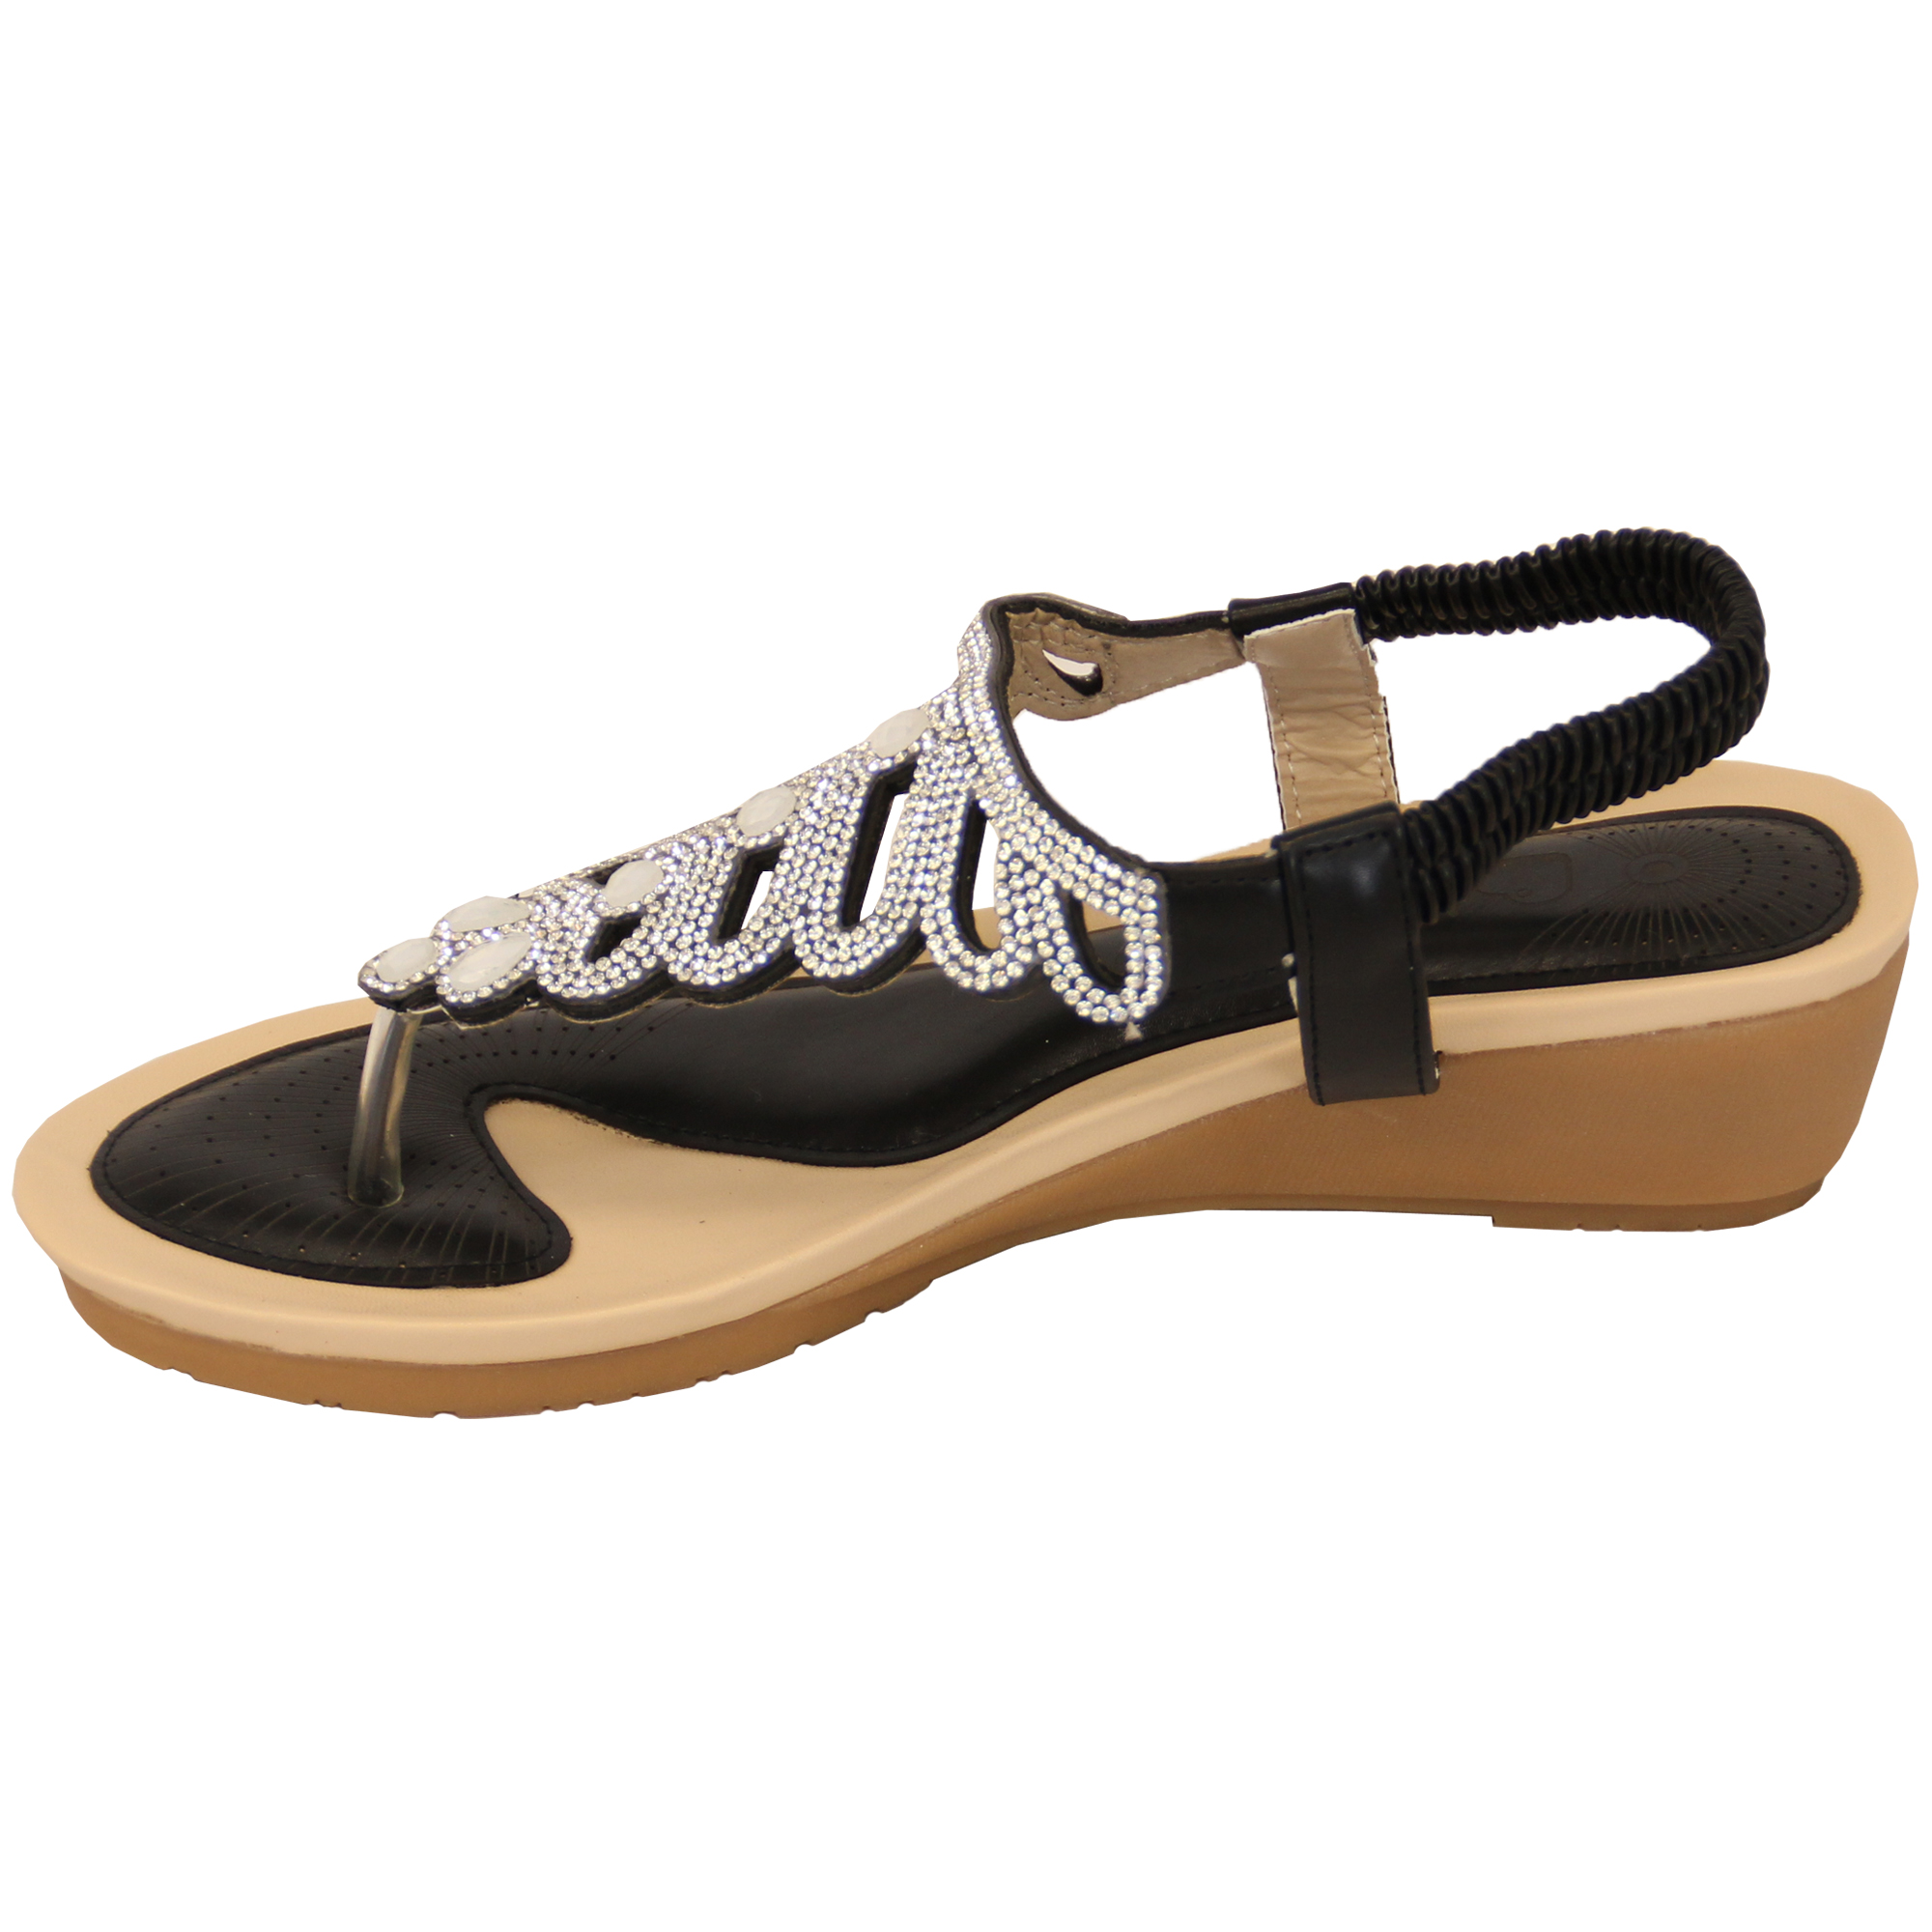 Ladies-Sandals-Kelsi-Womens-Diamante-Slip-On-Toe-Post-Shoes-Casual-Fashion-New thumbnail 11